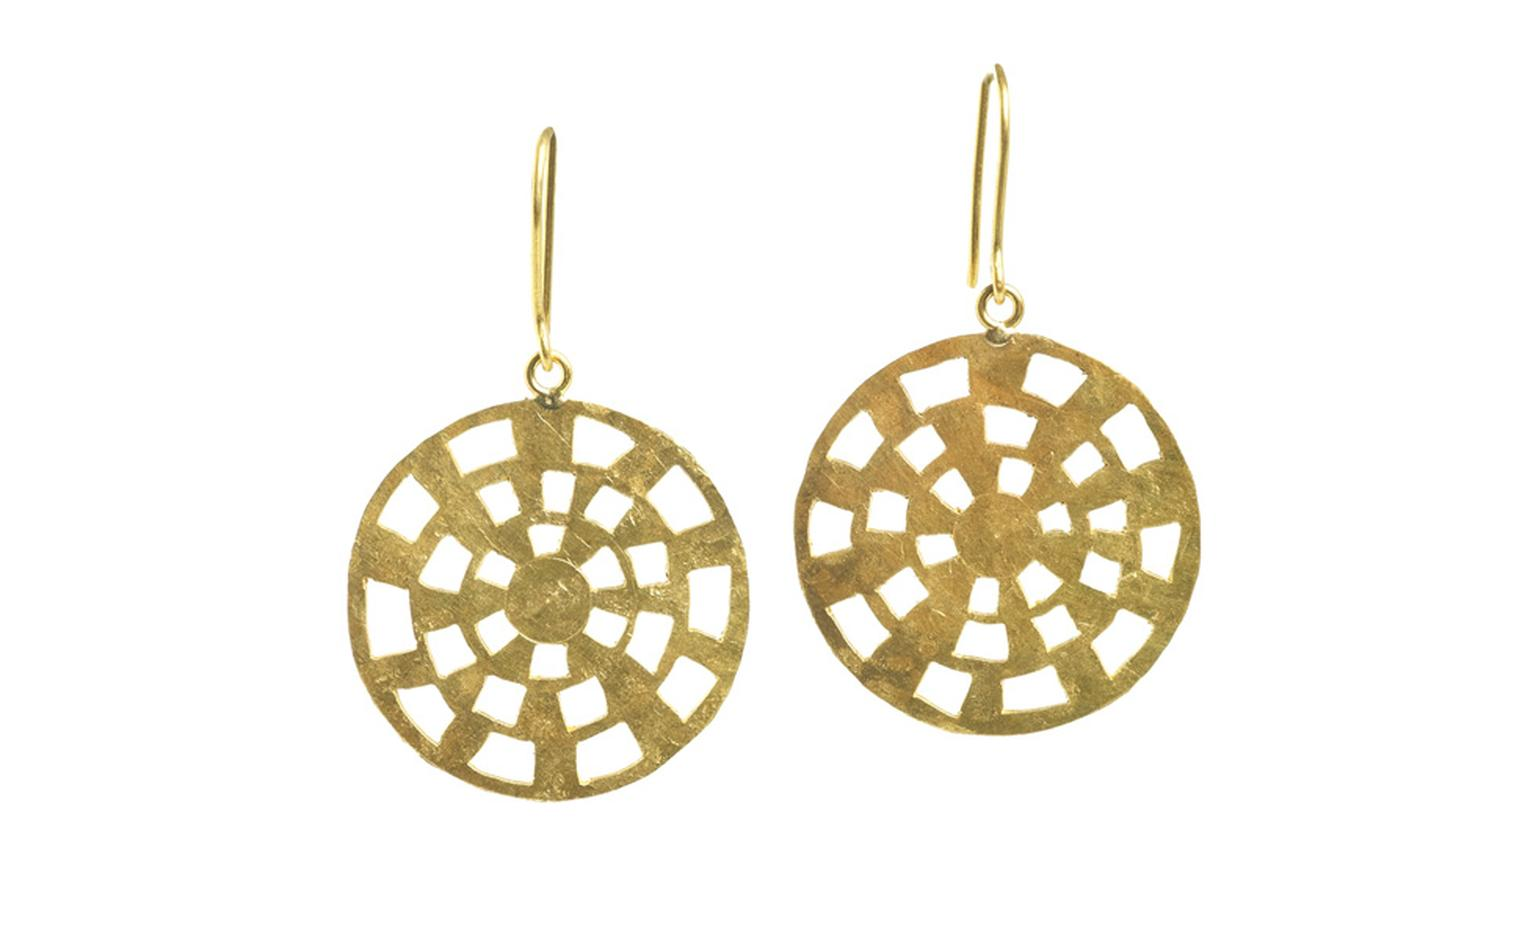 Pippa Small Fairtrade gold earrings. These disc earrings capture the boho chic feel of Pippa's jewels, and none more so than these earrings with a squeaky clean conscience.